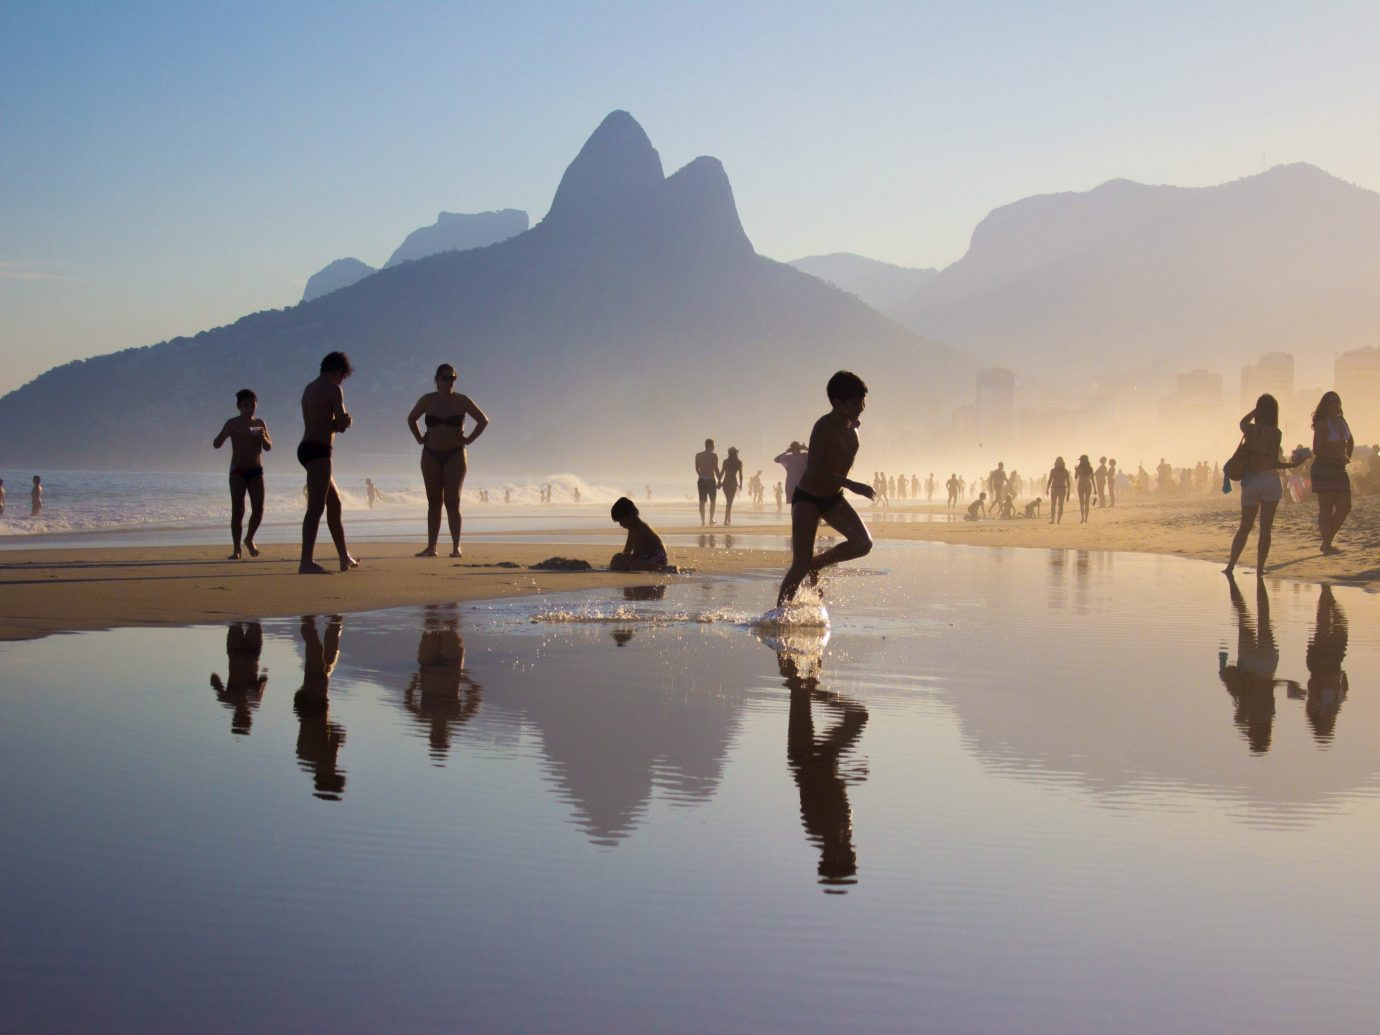 Offbeat outdoor water sky Nature atmospheric phenomenon reflection natural environment Beach mountain morning Sea people landscape dawn sand shore several